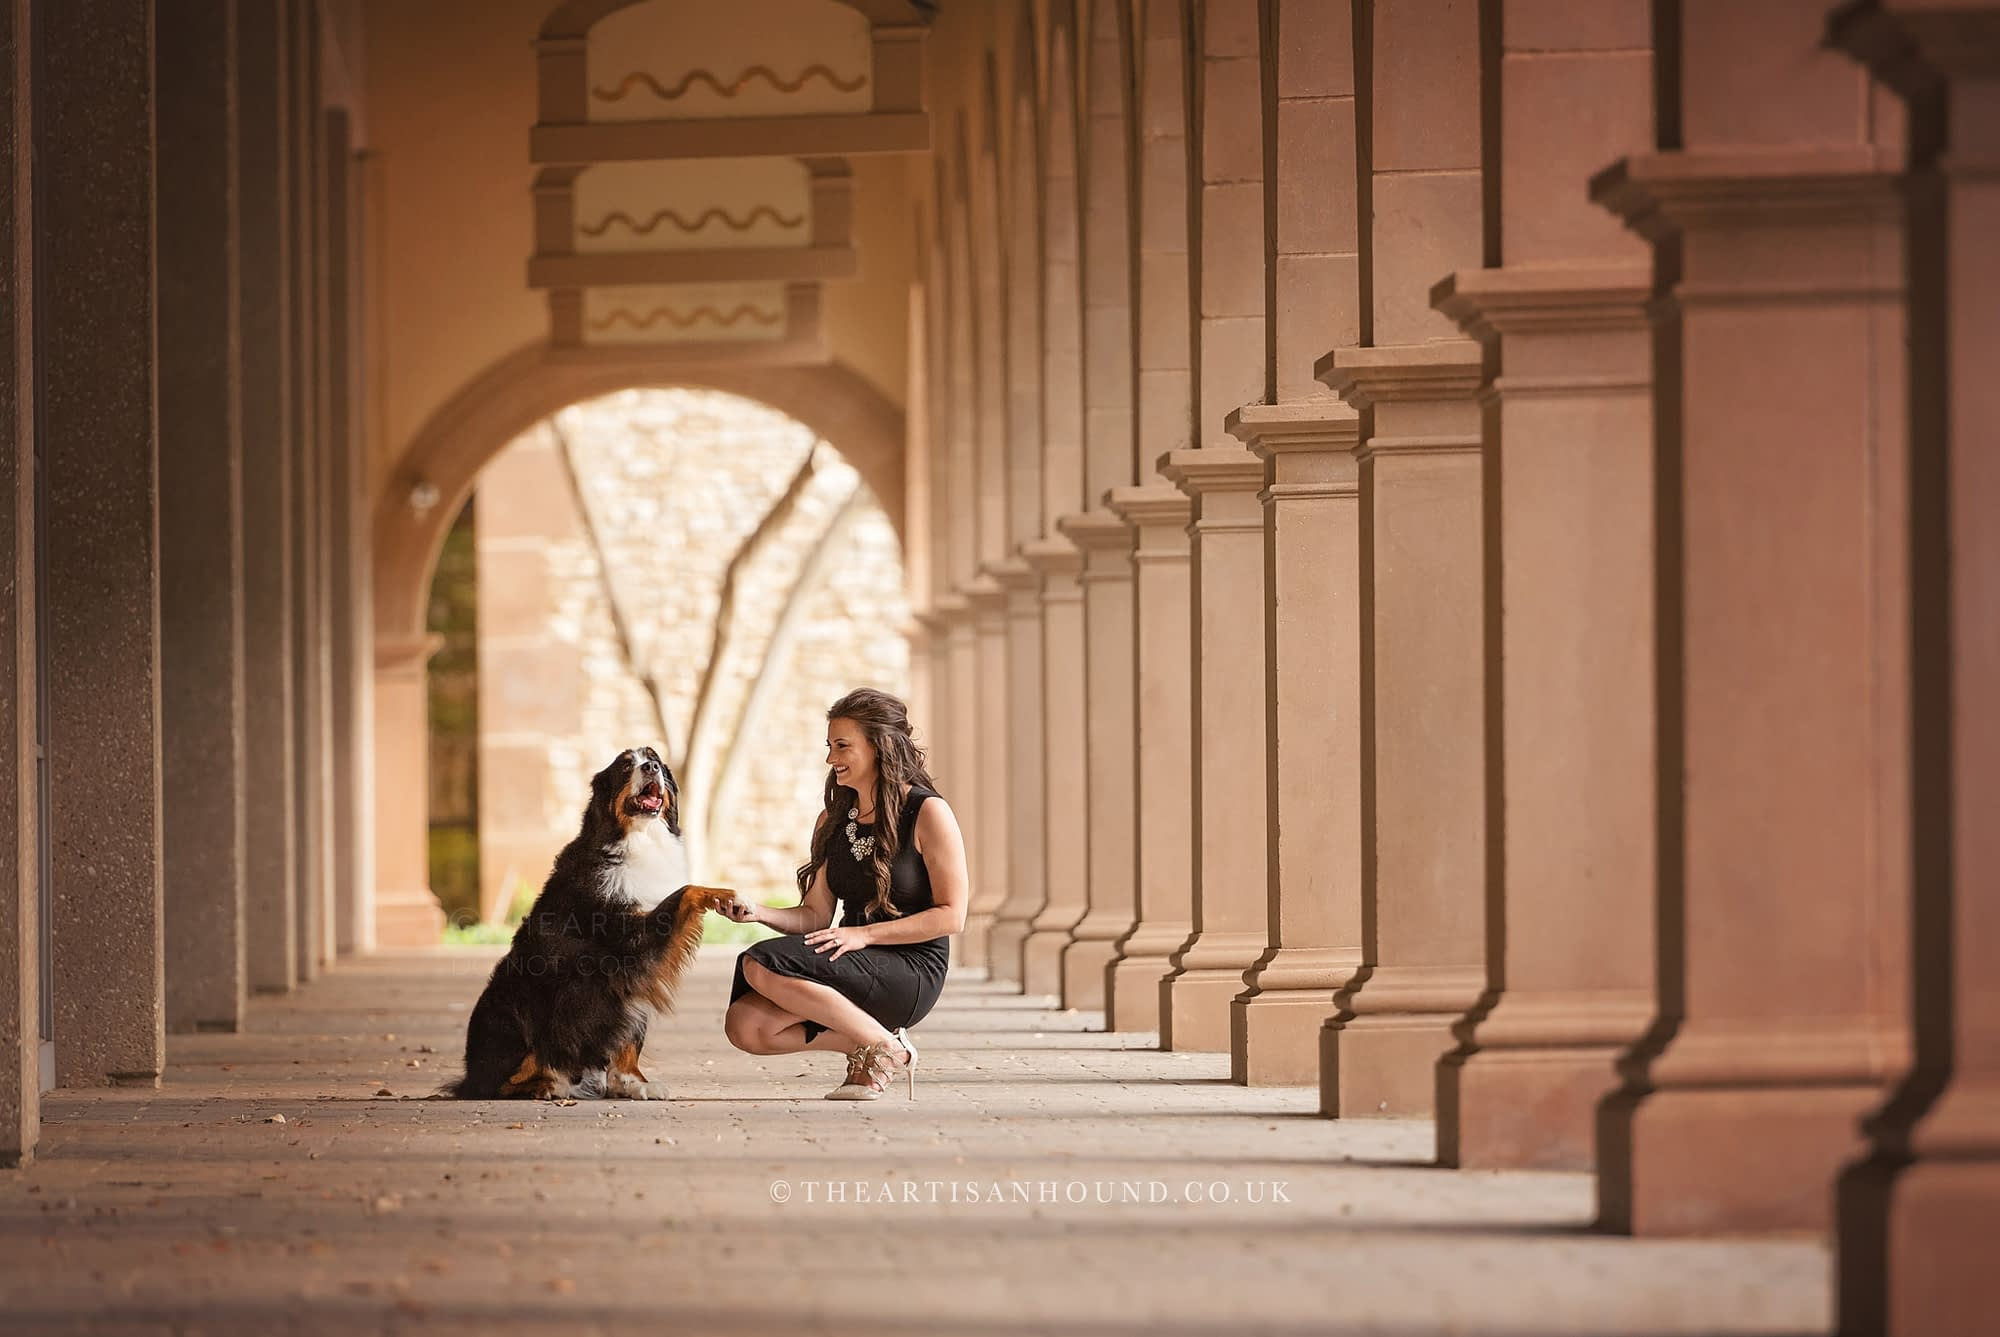 Dog giving paw to owner in urban walkway with columns